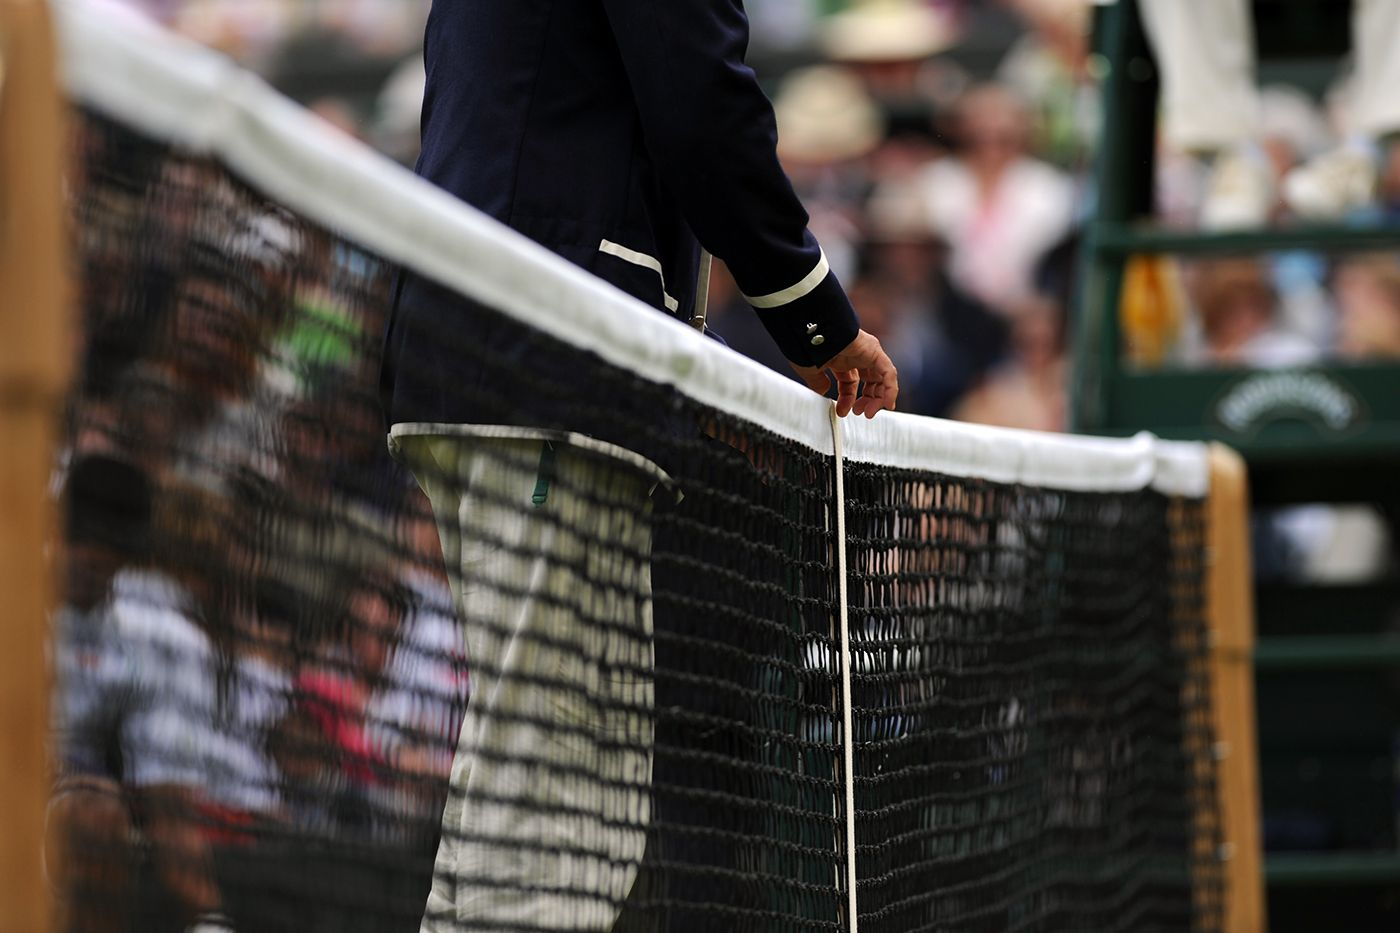 A Line Judge Measures The Net On Centre Court Wimbeldon Grand Slam Tennis Wimbledon Tennis Wimbledon 2015